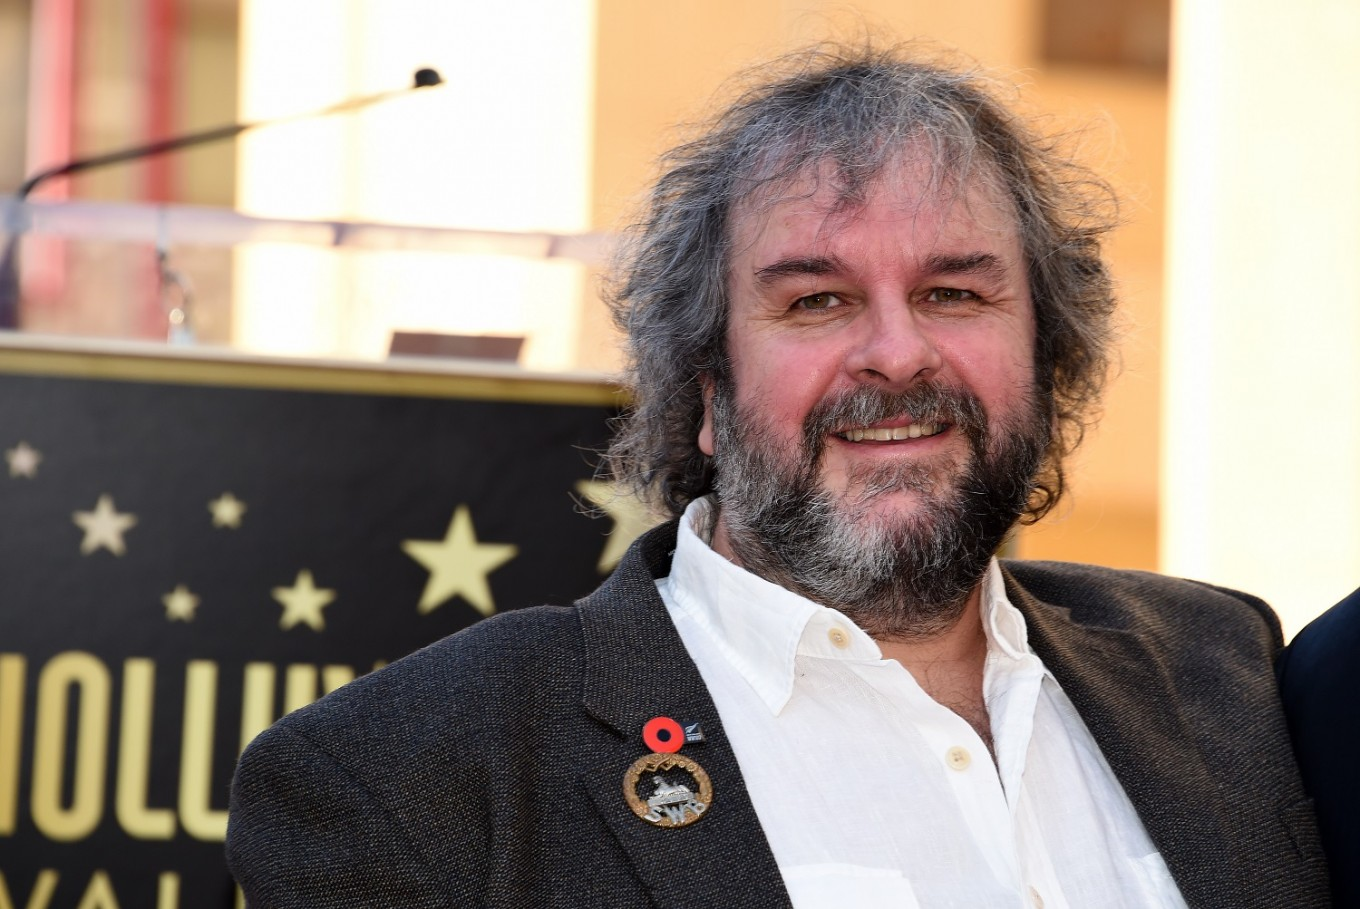 From Rings to Ringo: Peter Jackson helms Beatles documentary